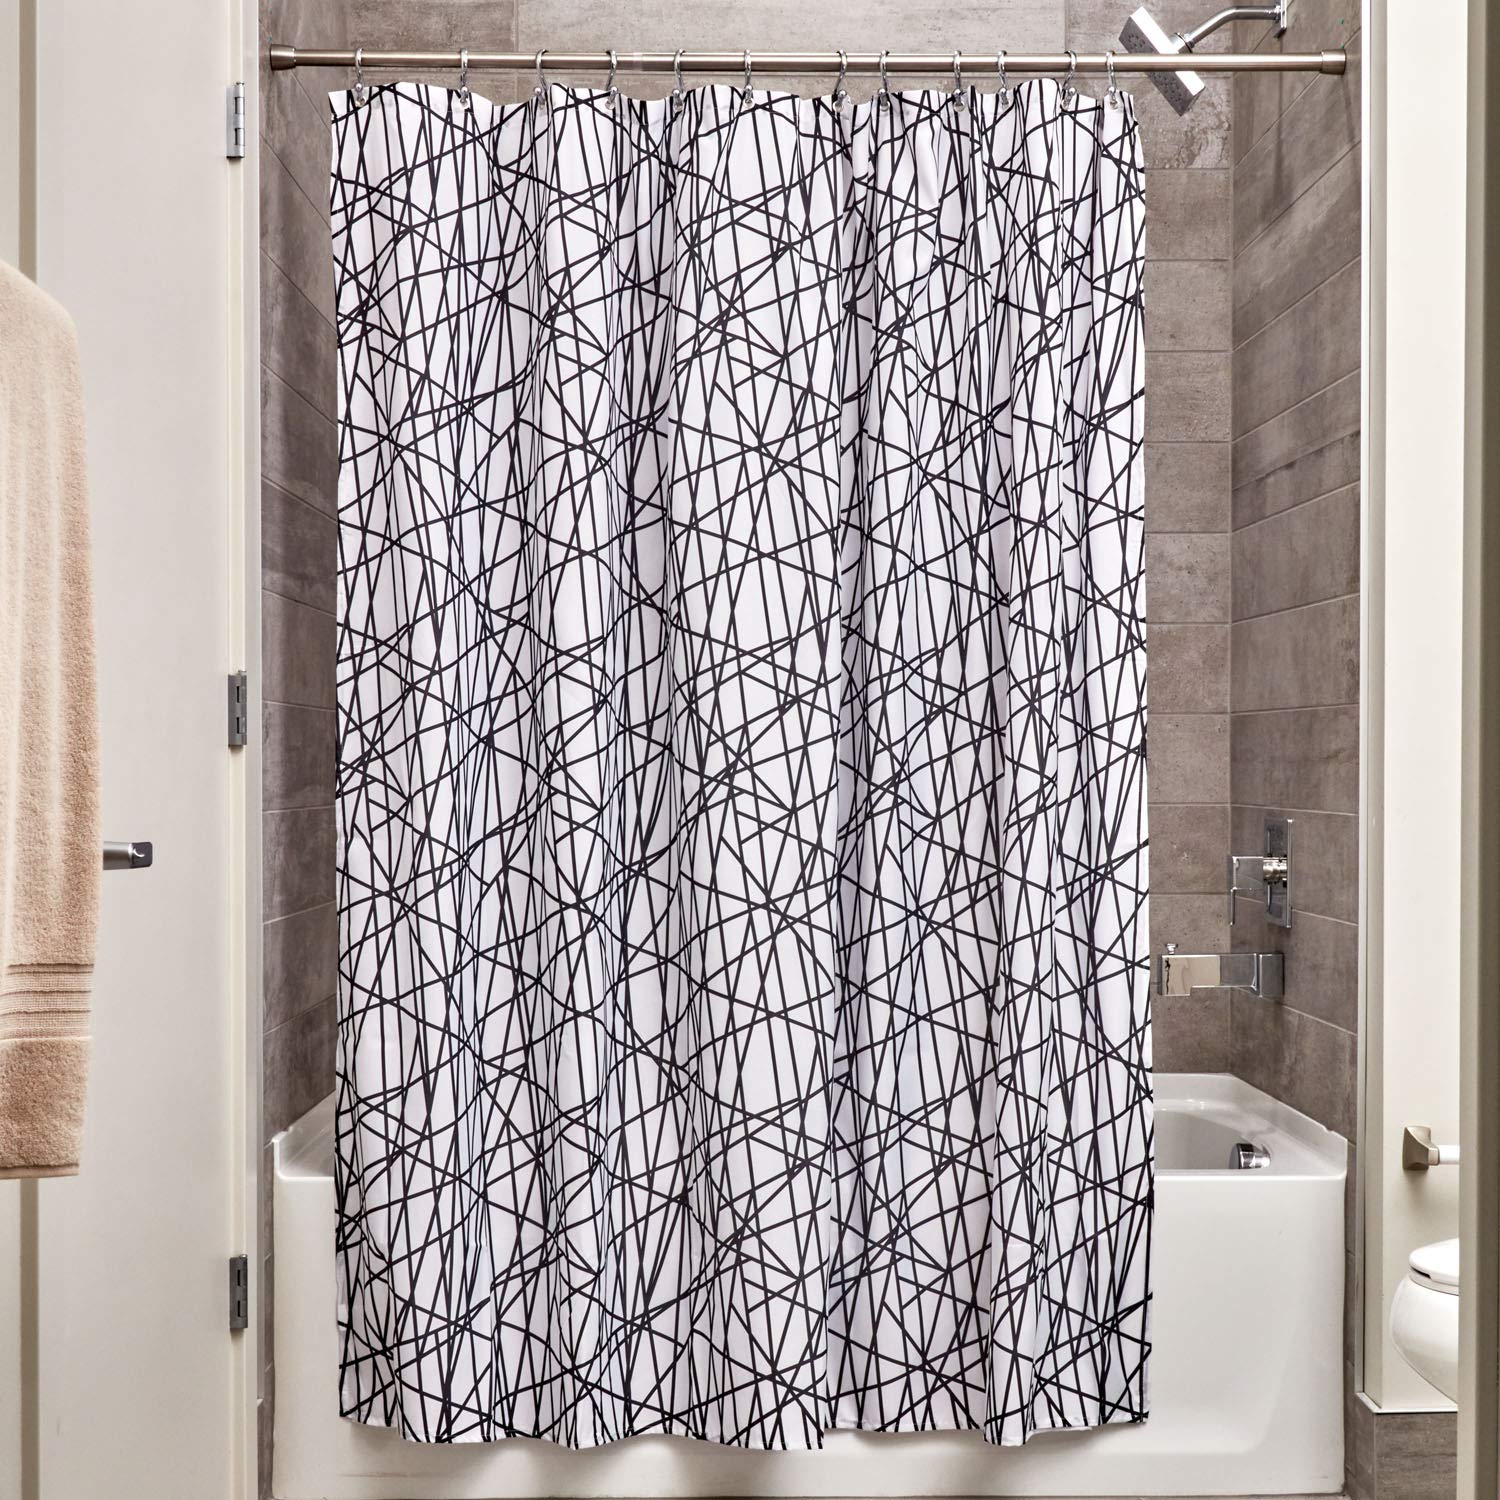 InterDesign Abstract Fabric Shower Curtain, 72